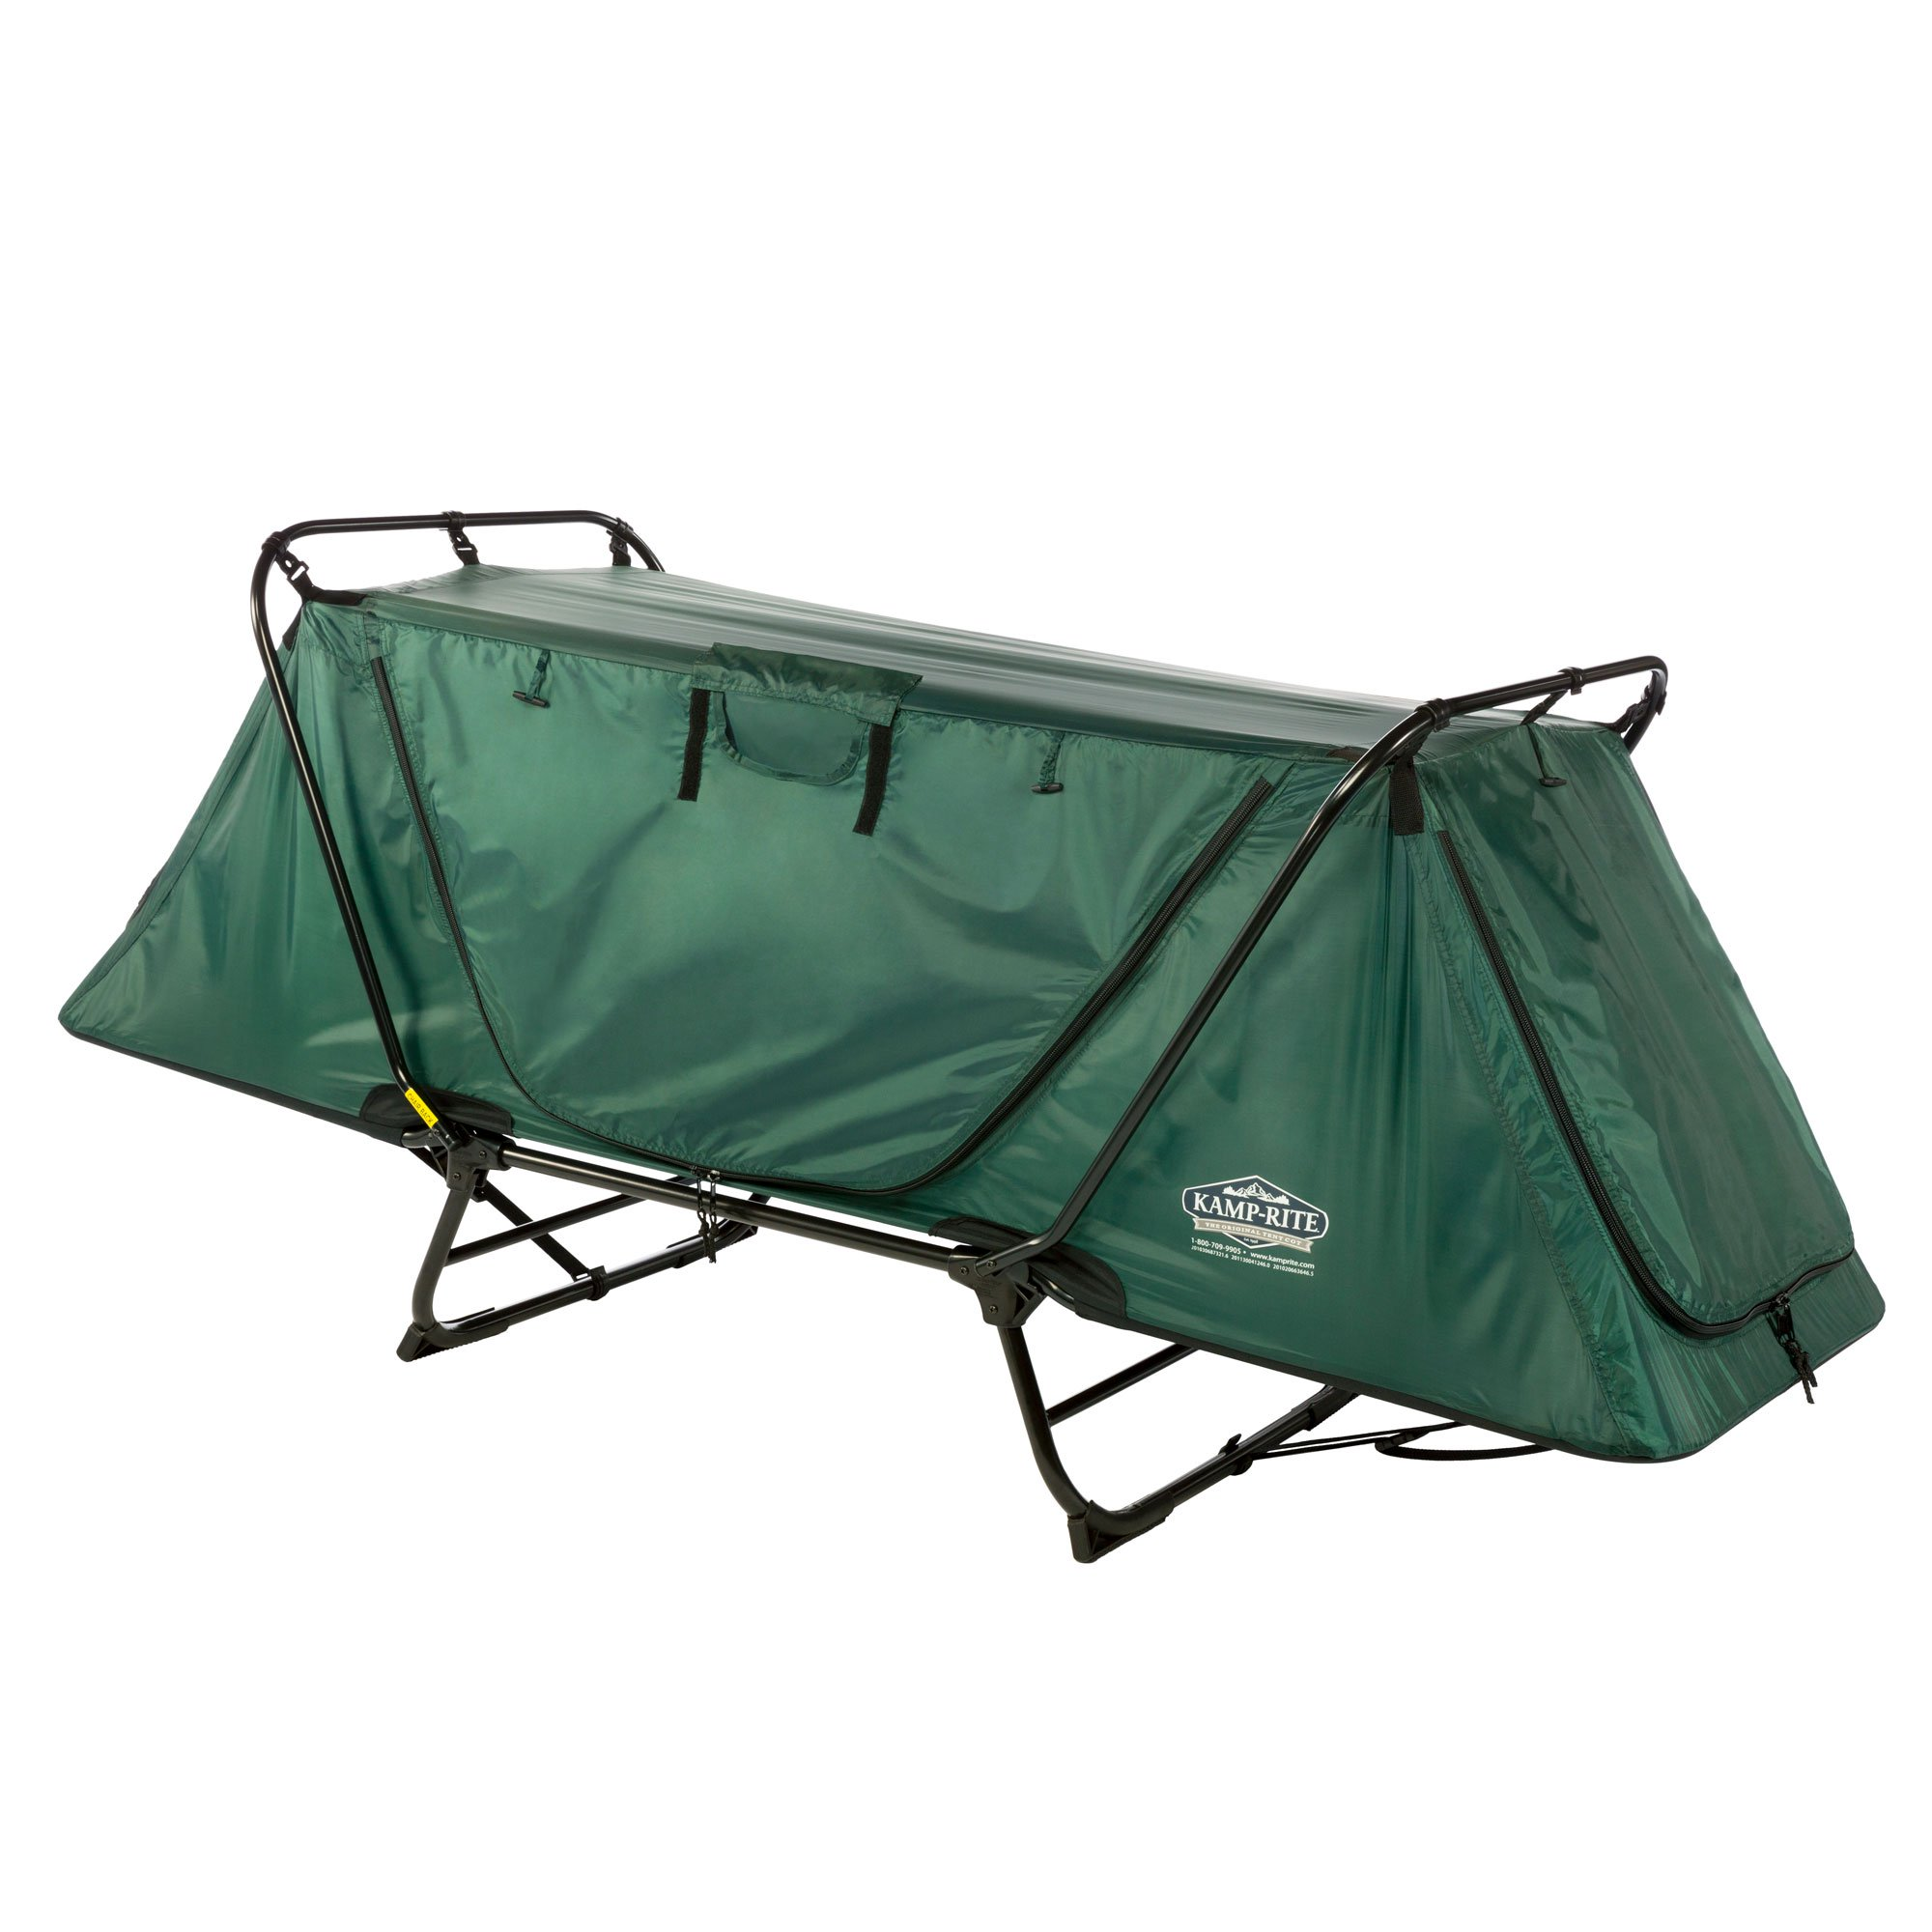 Kamp-Rite Original Tent Cot Folding Outdoor Camping & Hiking Bed for 1 Person